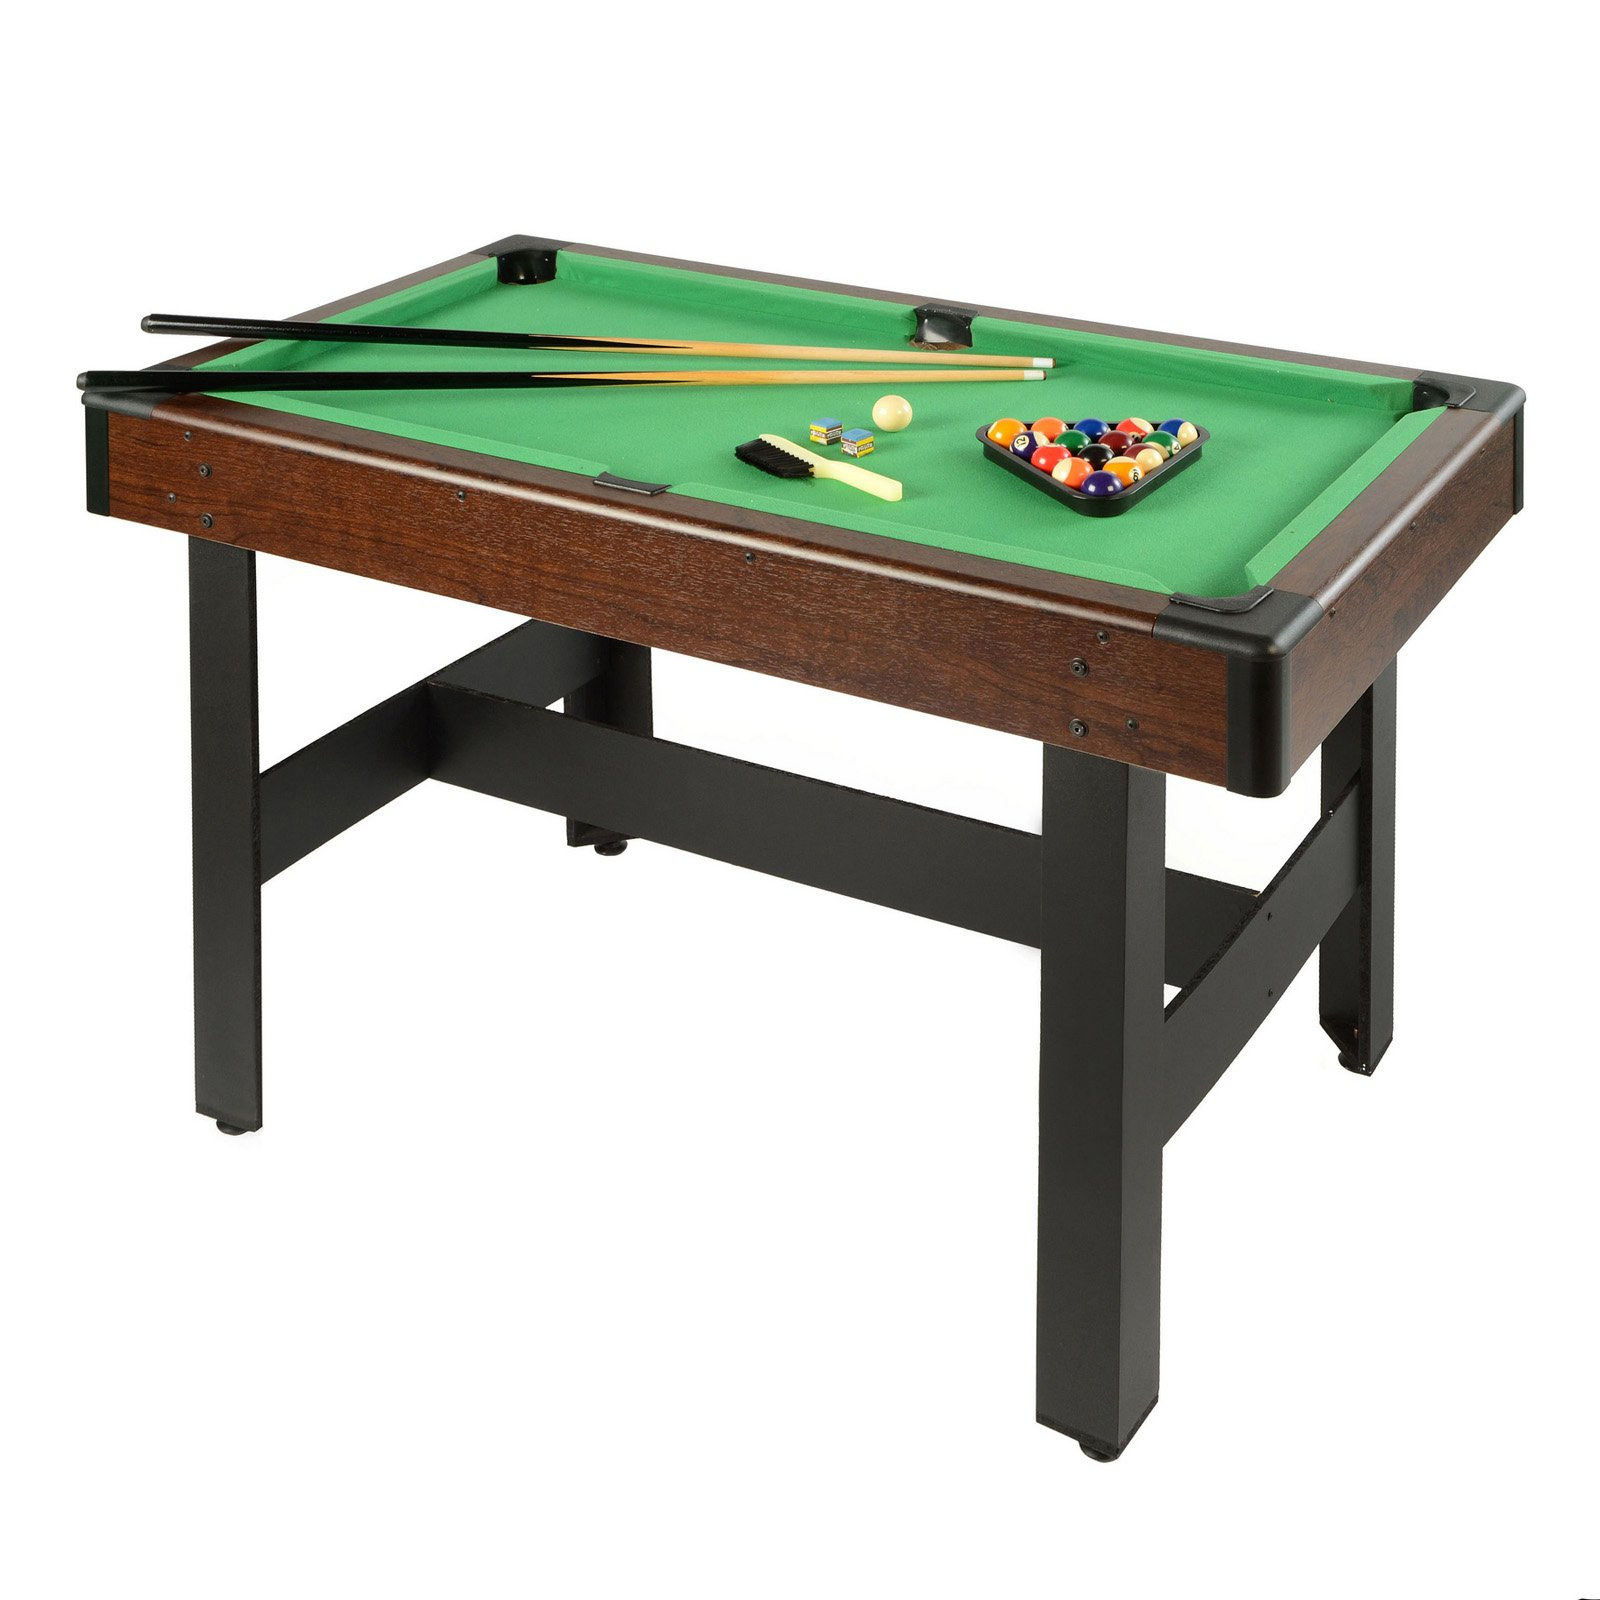 "Voit Billiards 48"" Pool Table With Accessories by Lion Sports"